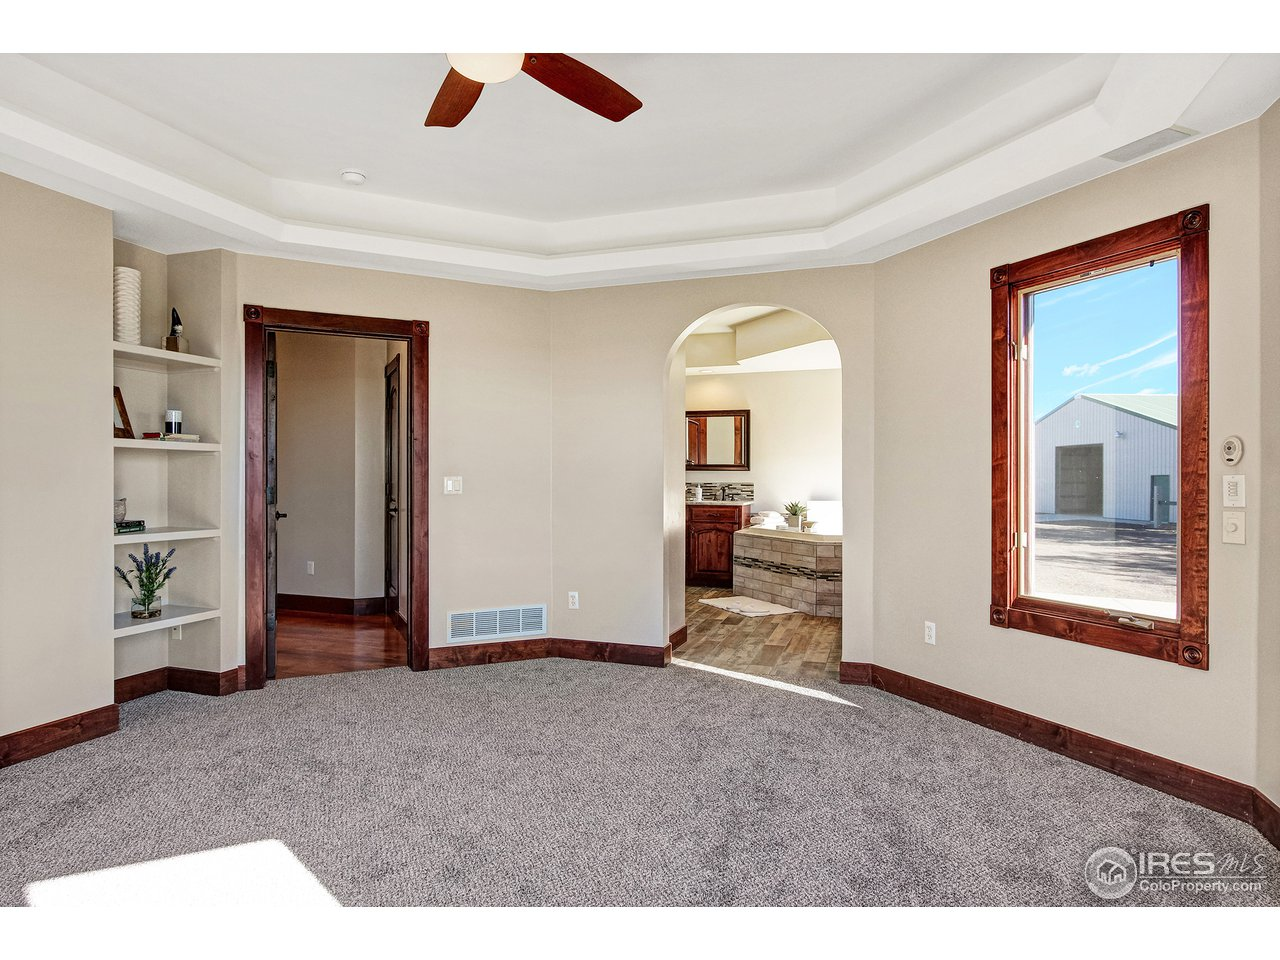 Master Bedroom with Walkout Patio